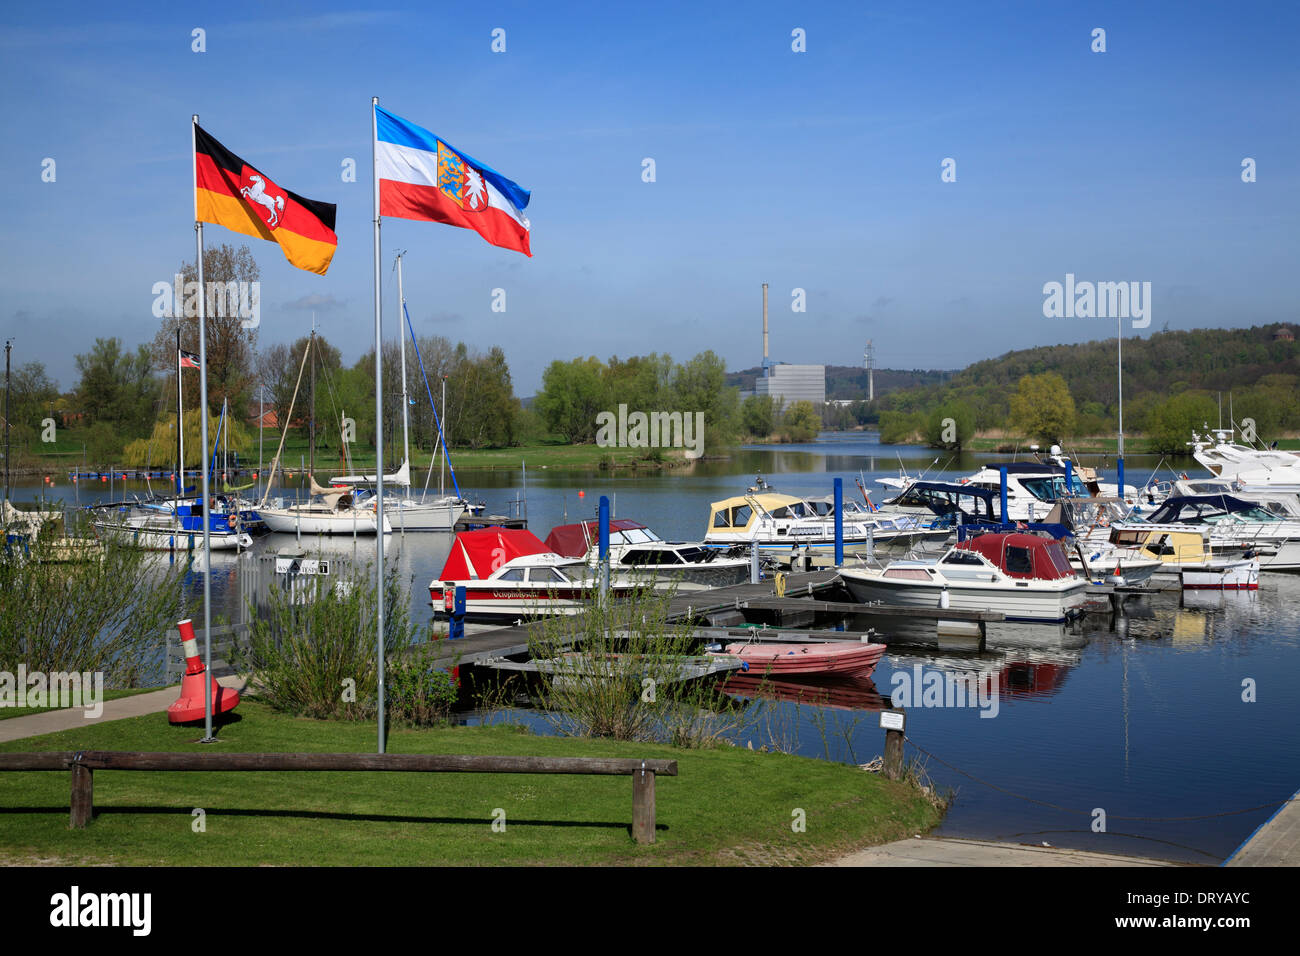 Elbe river cycle route, harbor in Tespe, Lower Saxony, Germany, Europe - Stock Image